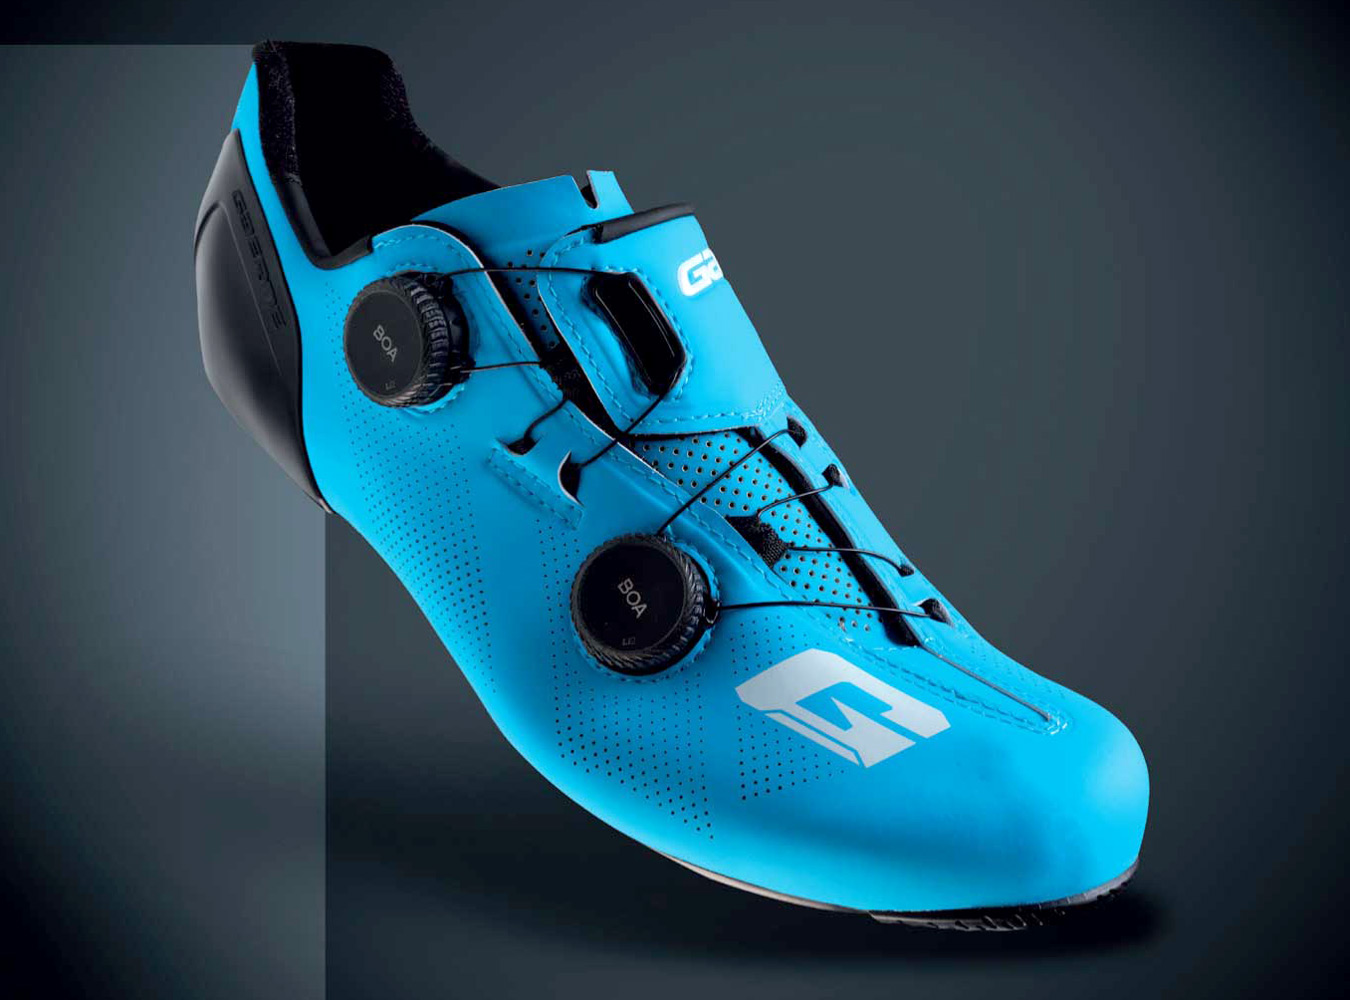 Gaerne G.STL road shoes, top-tier made-in-Italy performance carbon road race bike shoe,angled